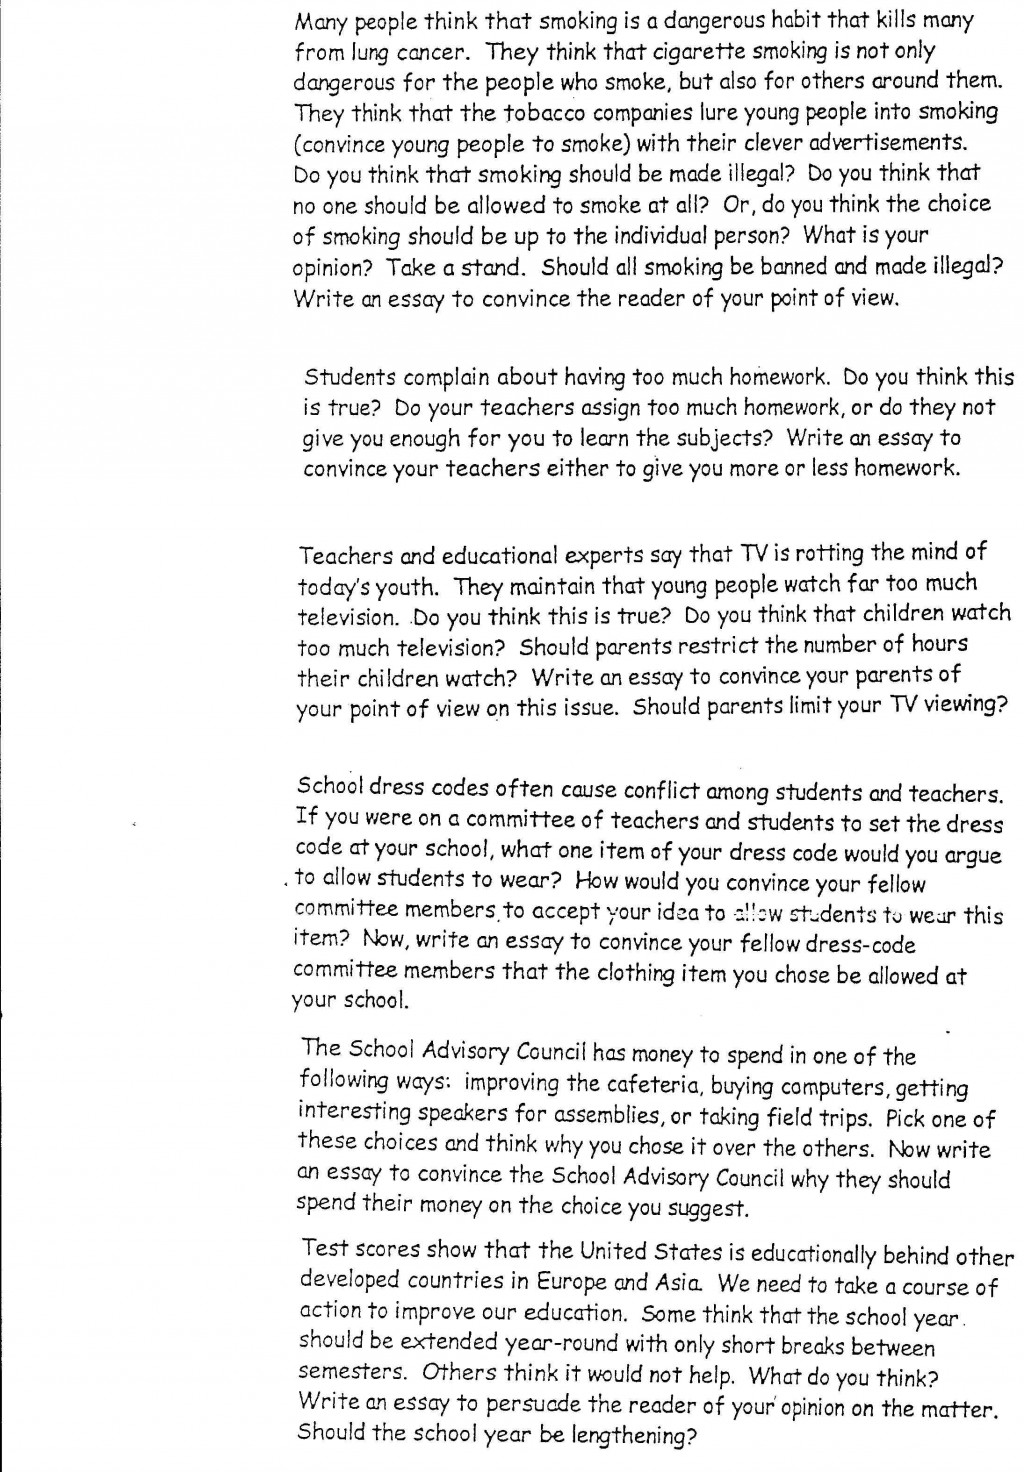 020 Interesting Essay Topics Argumentative Persuasive L Amazing Descriptive To Write About For Grade 8 In Urdu Synthesis Large